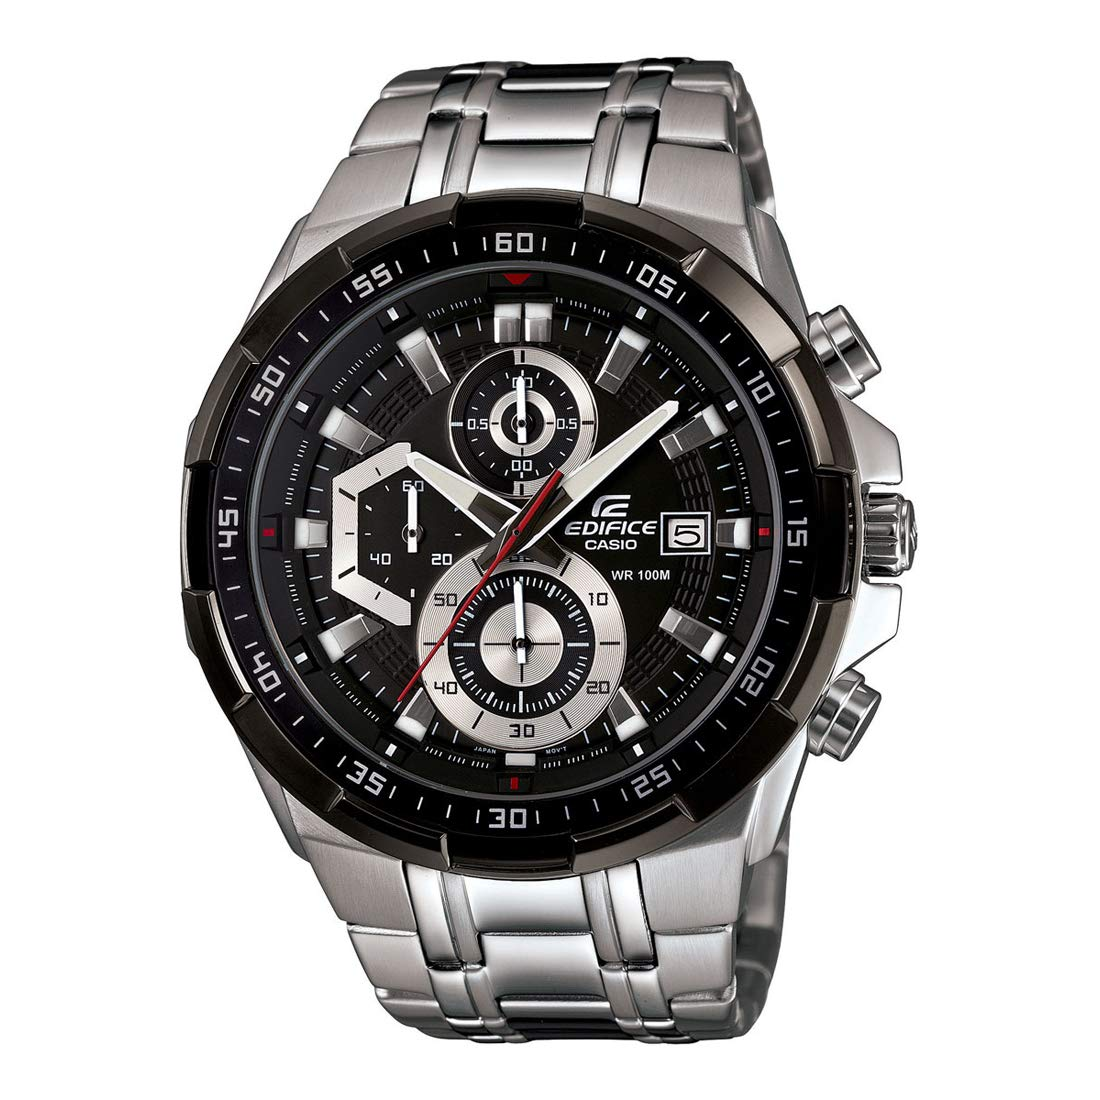 15dd63868256 Buy Casio Edifice Chronograph Black Dial Men s Watch - EFR-539D-1AVUDF  (EX191) Online at Low Prices in India - Amazon.in